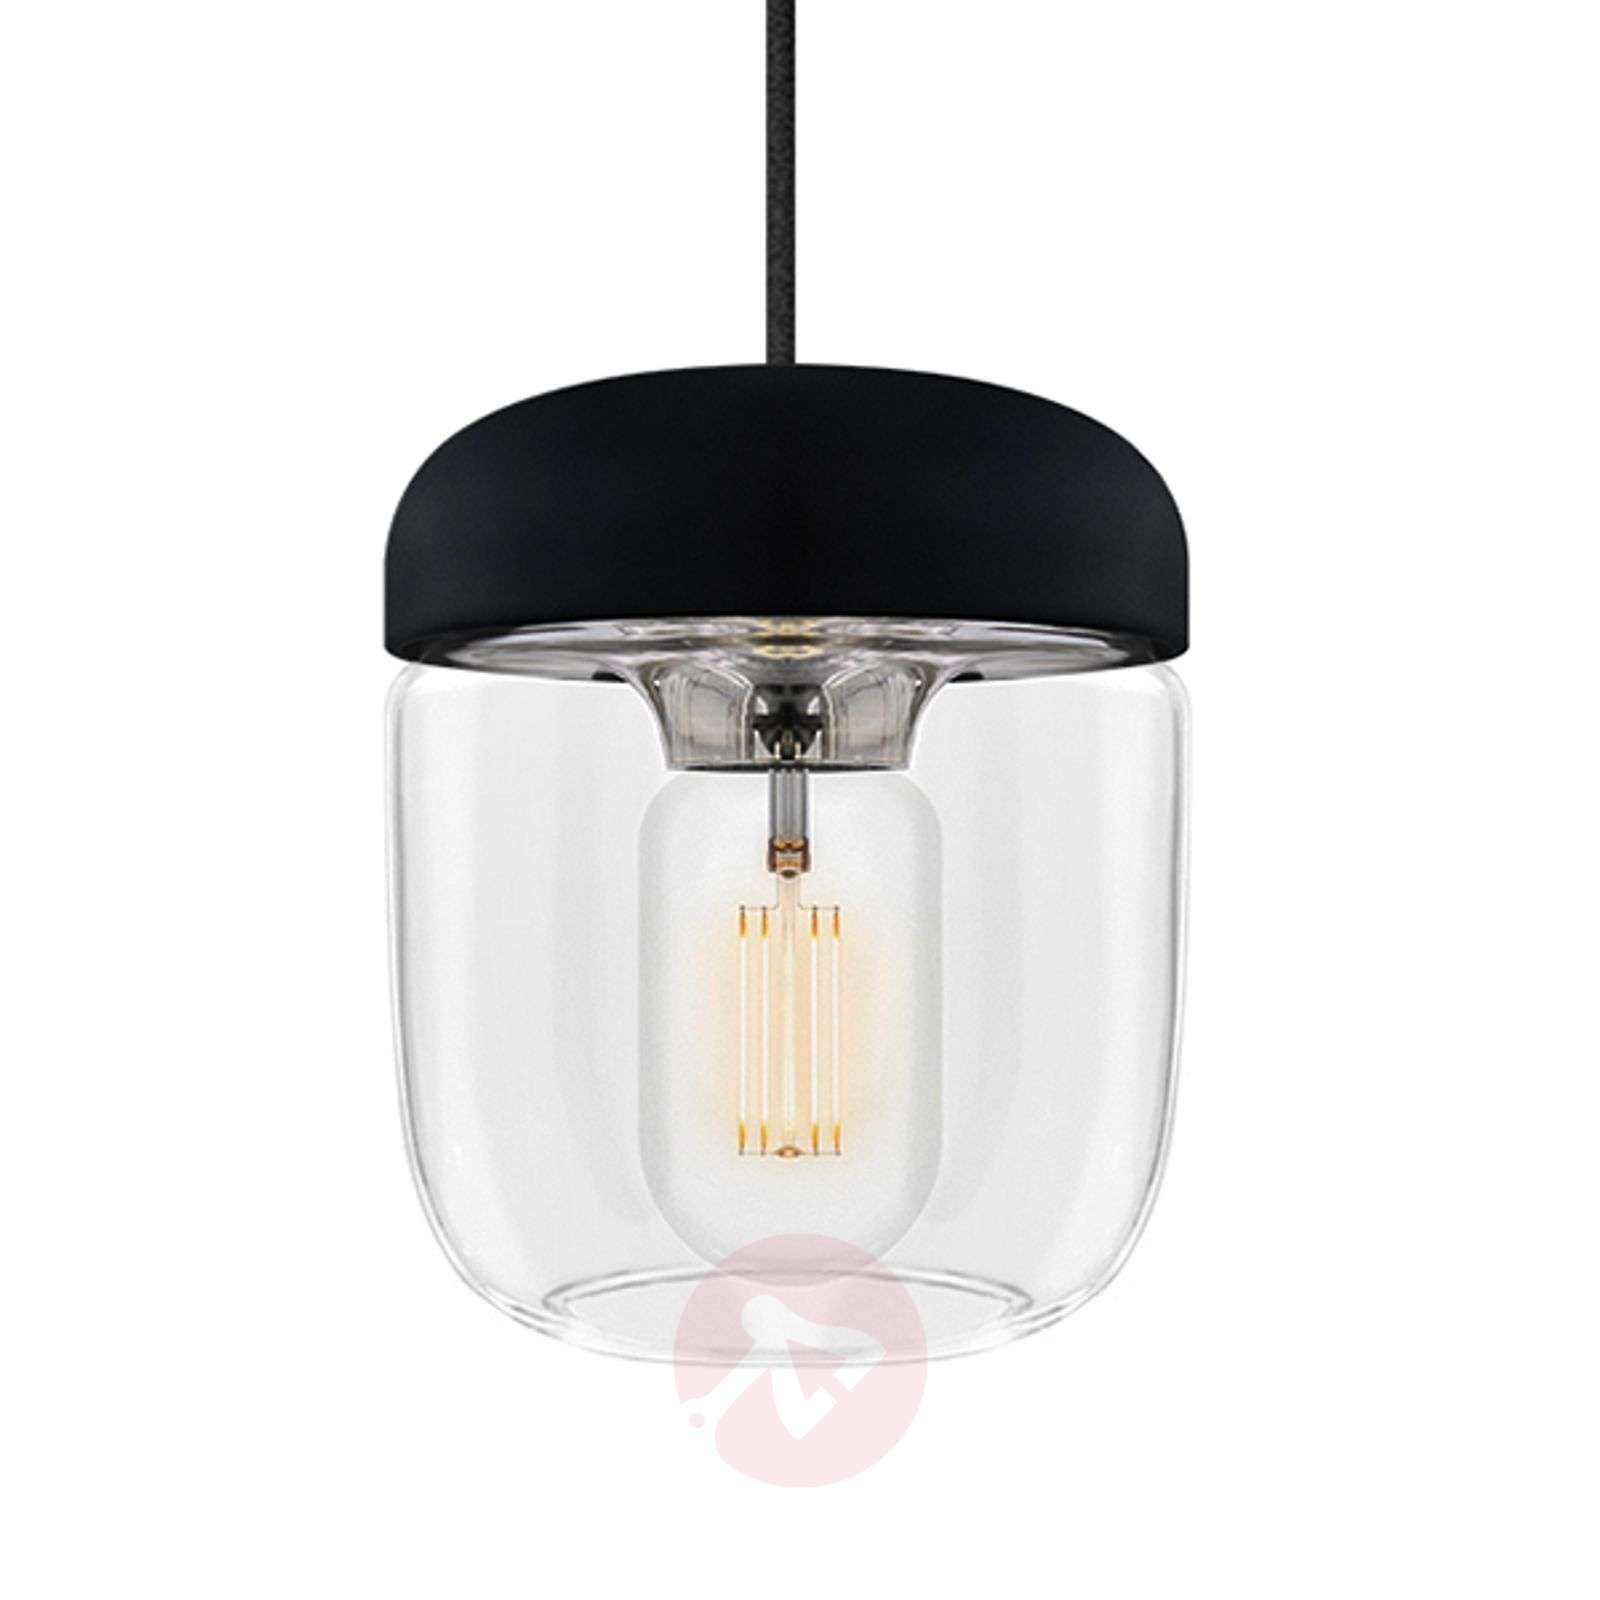 UMAGE Acorn hanging light black/steel-9521078-01